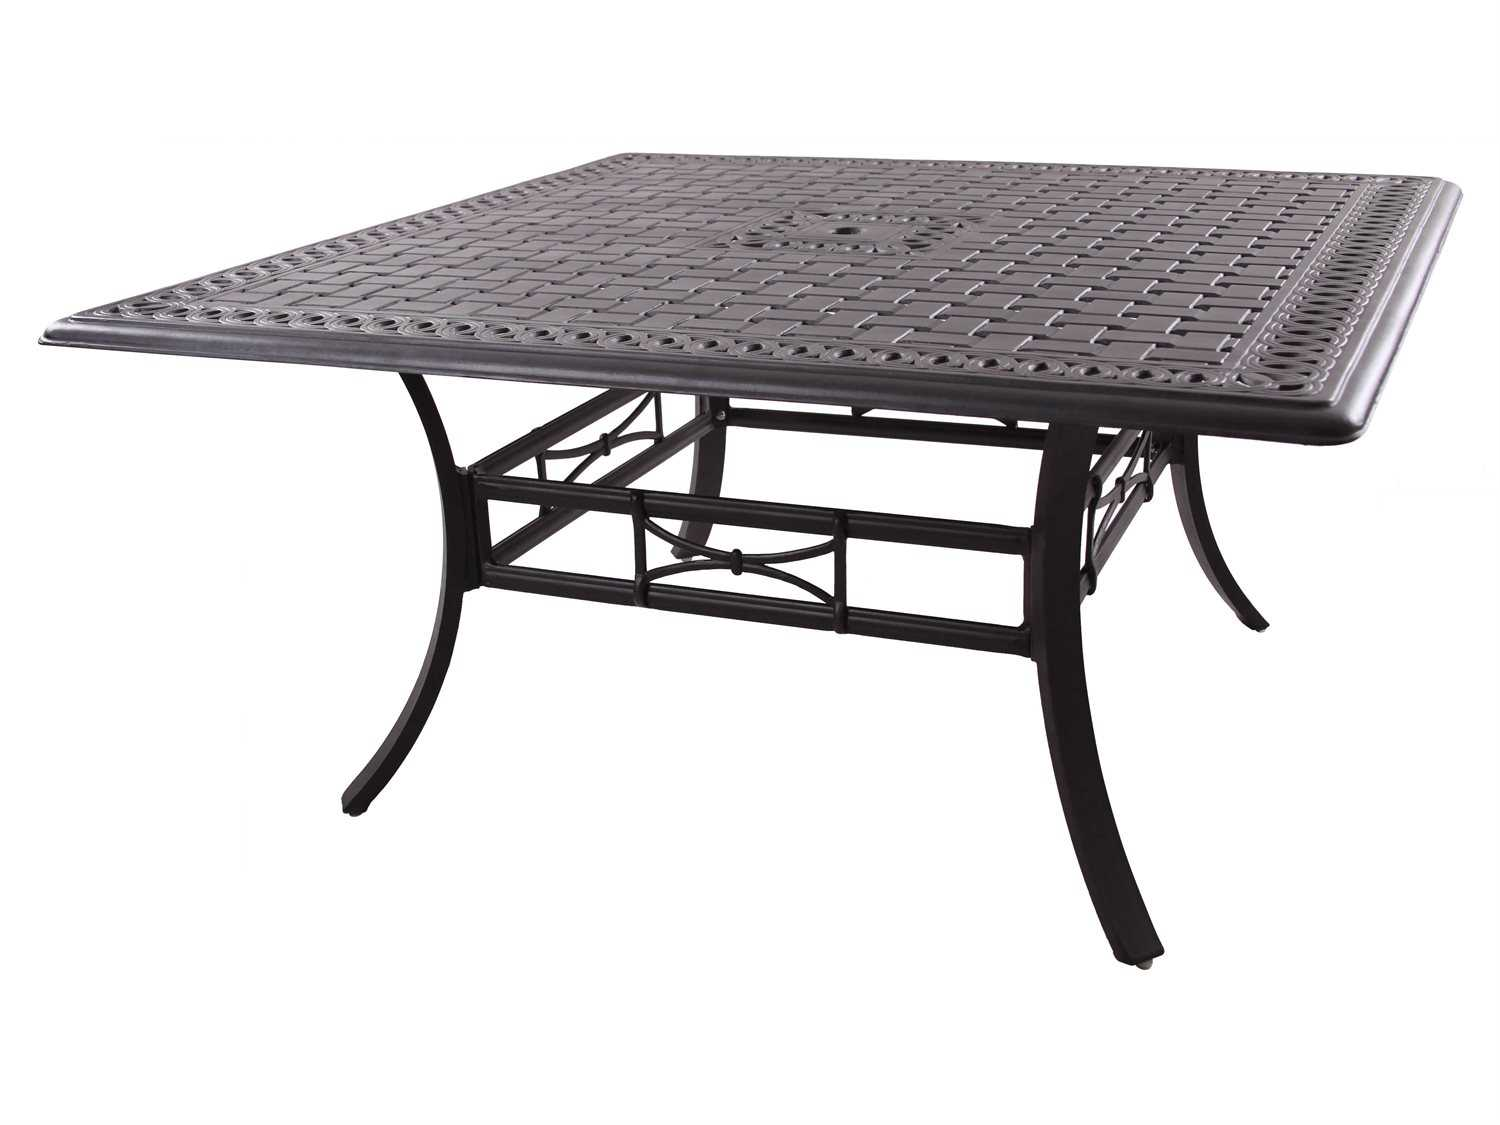 Darlee outdoor living series 88 cast aluminum antique for Square counter height table